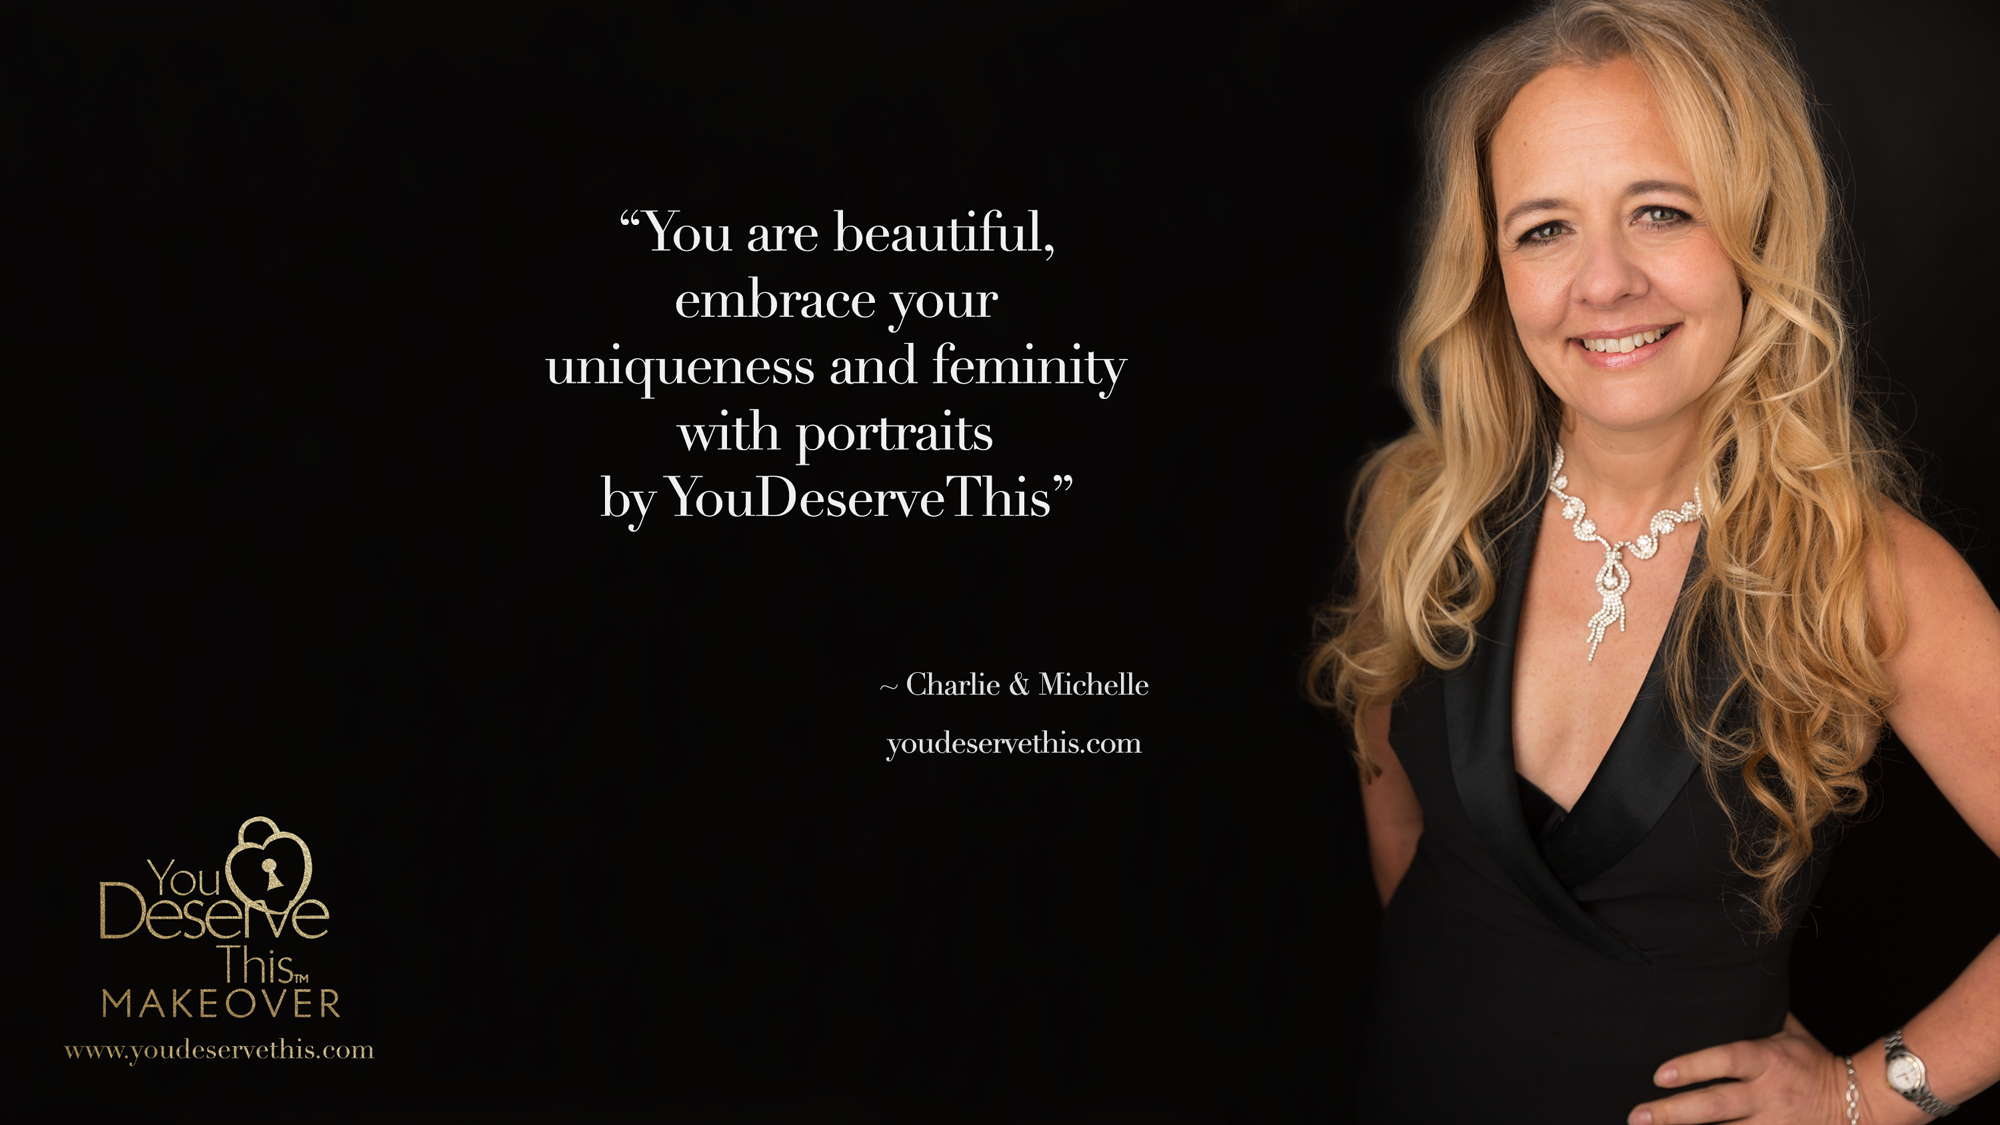 You are beautiful, embrace your uniqueness and femininity with portraits by  YouDeserveThis